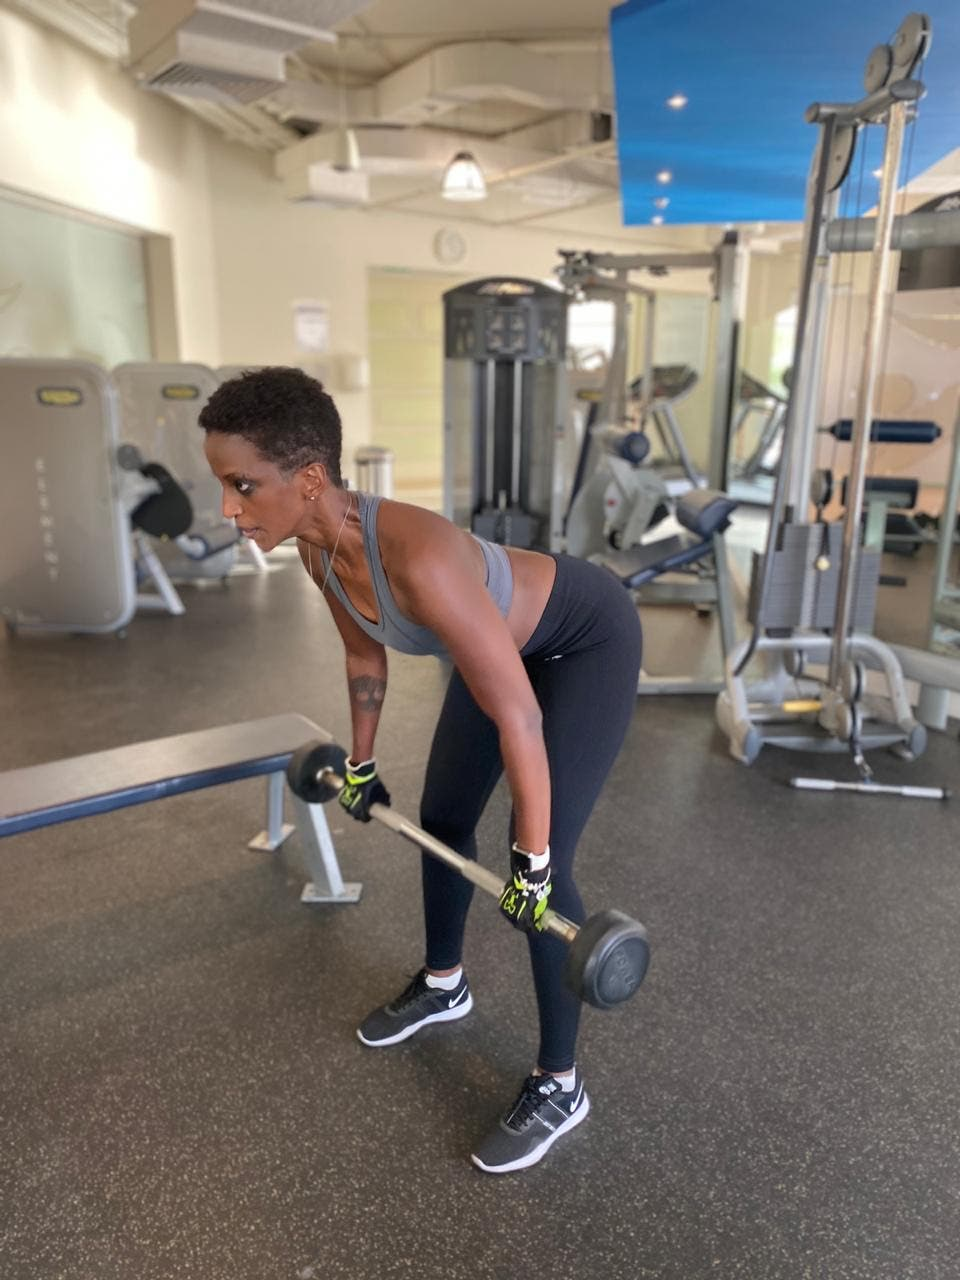 UAE Certified Personal Trainer and Fitness Coach Mulhima Ali Siddig exercises. (Supplied)